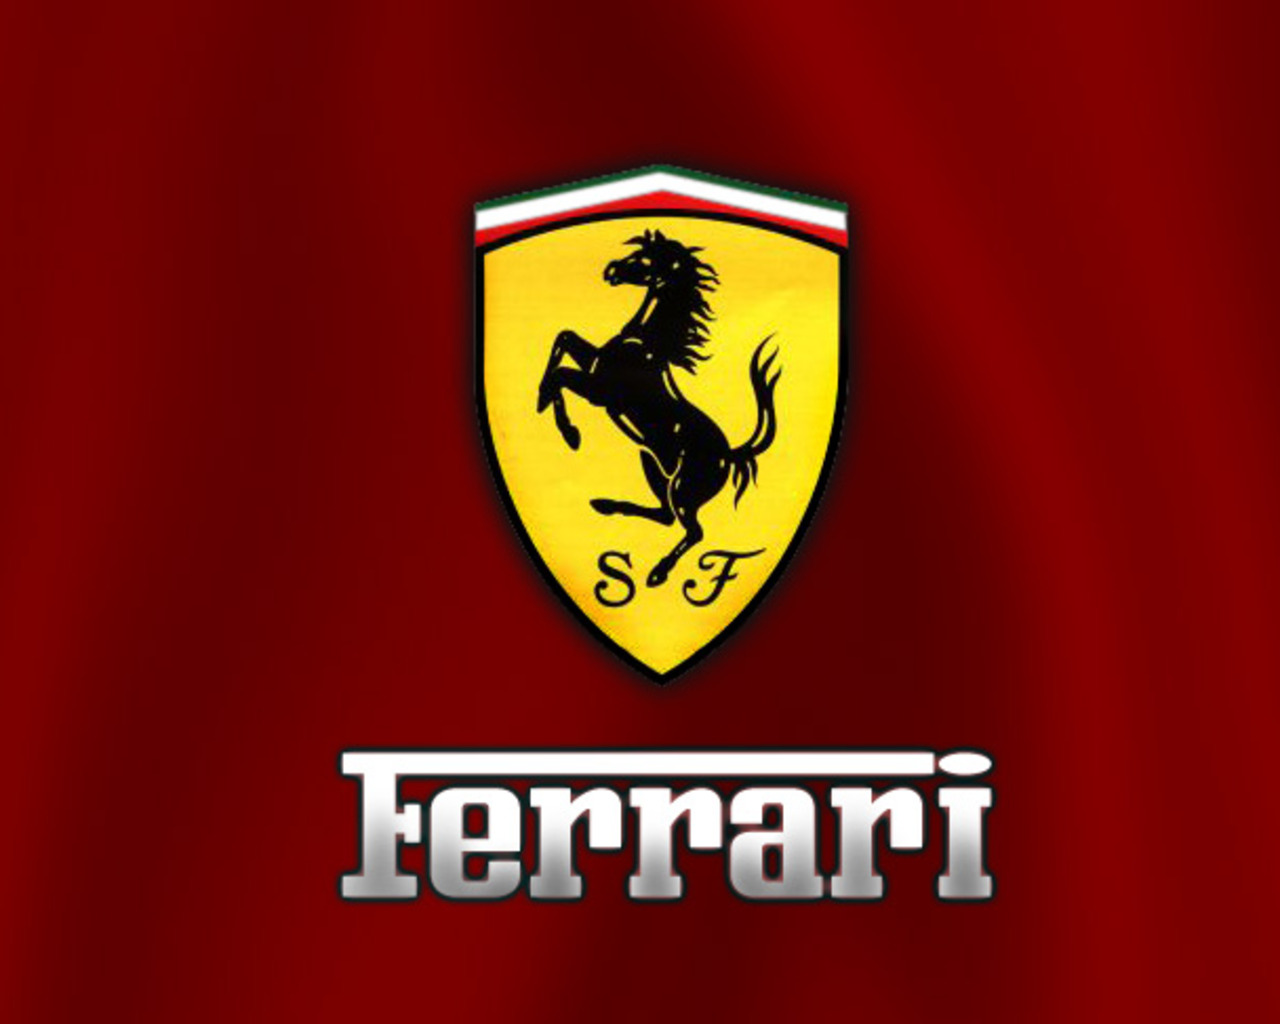 Ferrari Symbol Wallpaper